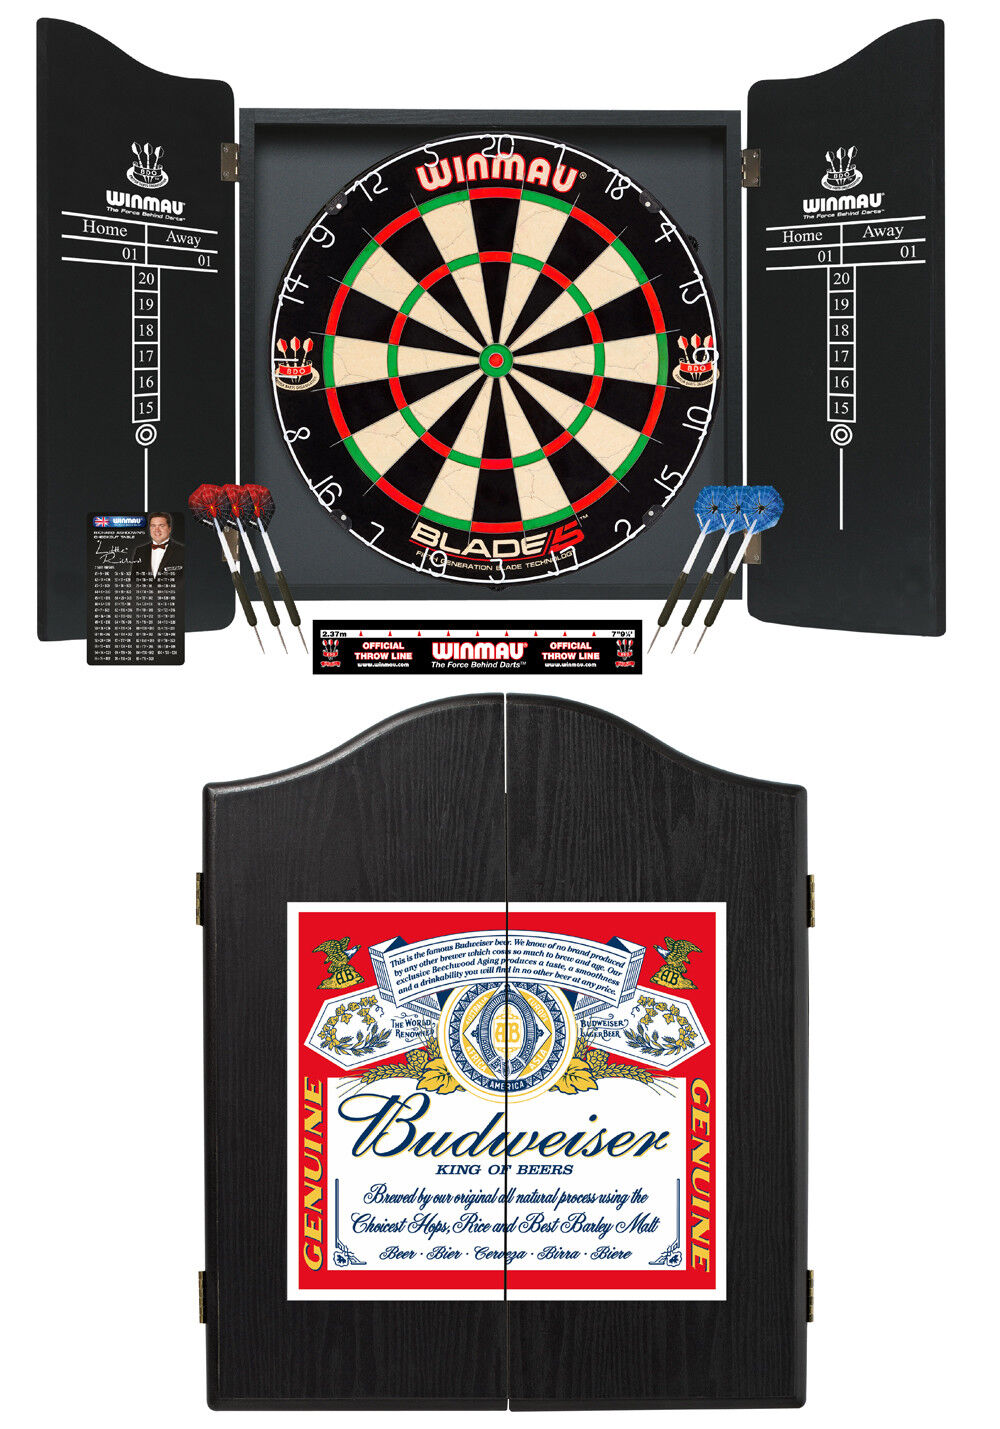 Deluxe Winmau Budweiser Complete Dart Set with Blade 5 Professional Dartboard